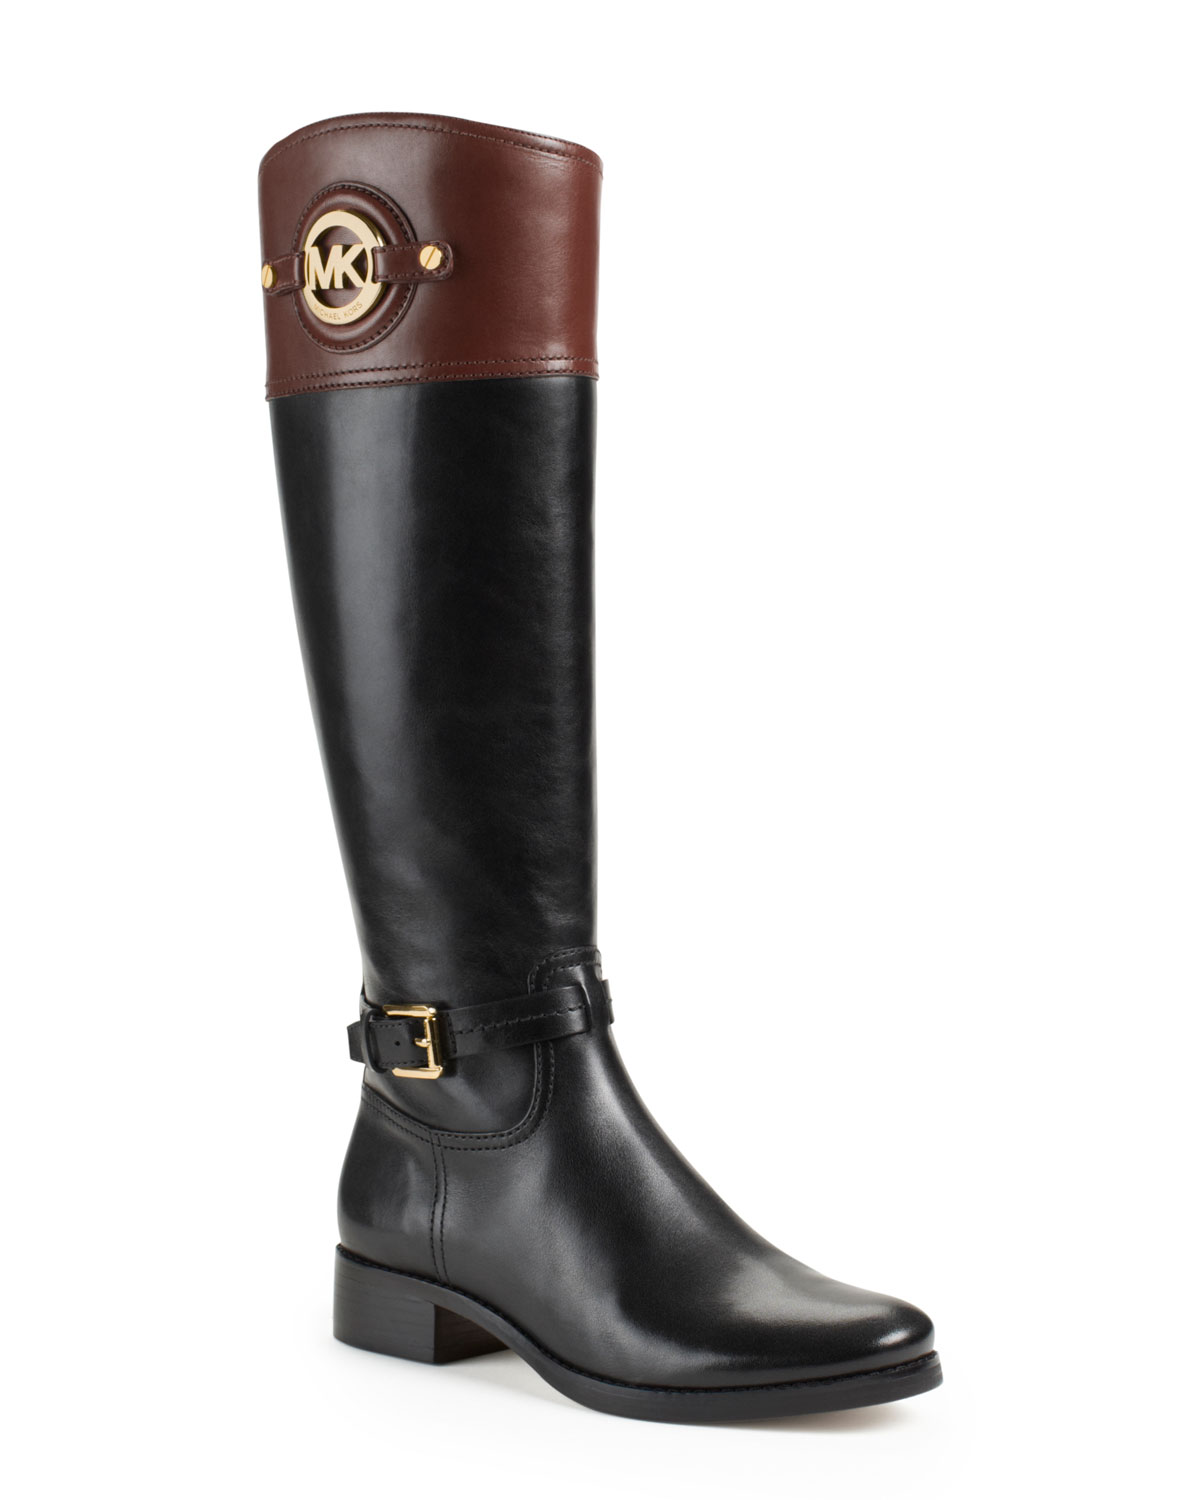 Michael kors Michael Stockard Twotone Leather Riding Boot in Black ...